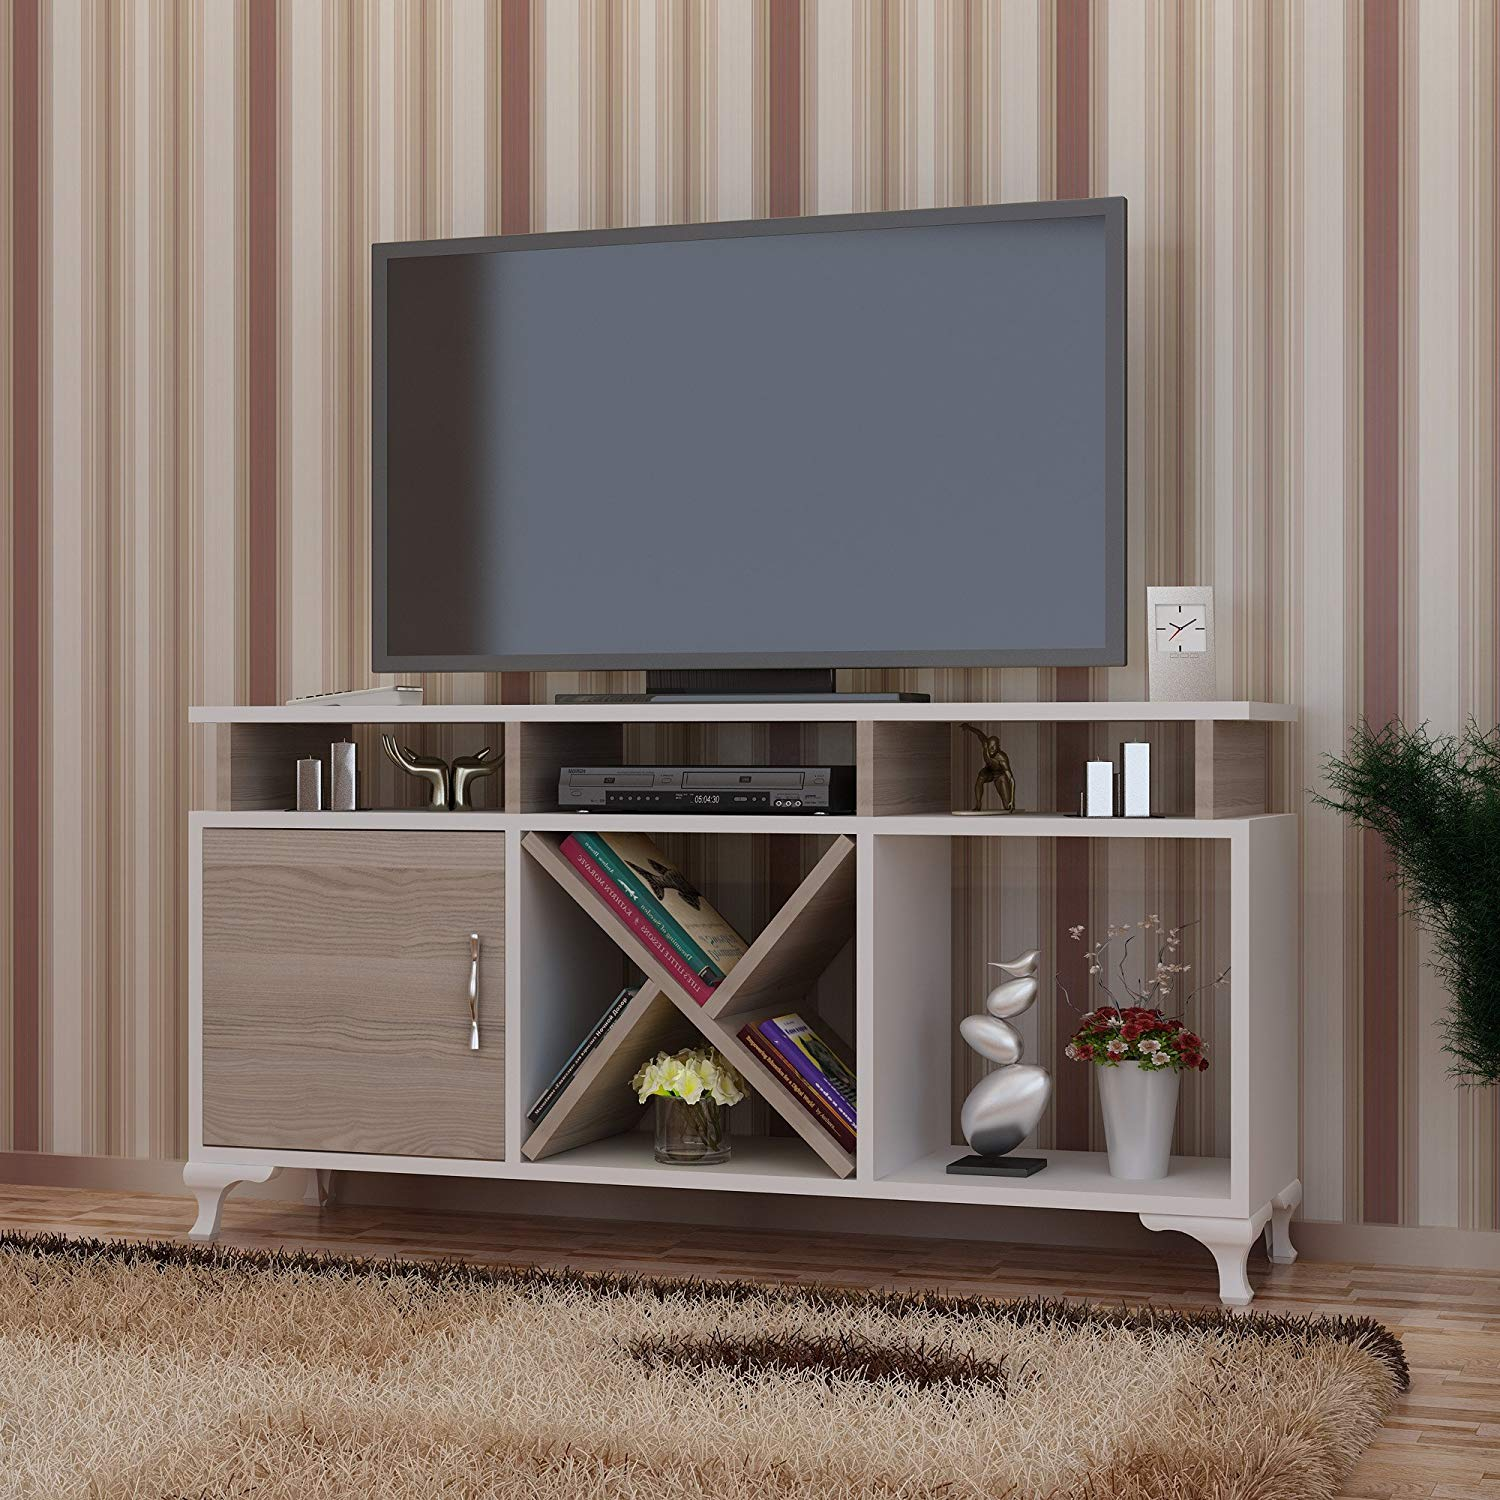 Buy Lamodahome Tv Stand Unit Design Modern Geometrical Brown Simple Plain Straight Stand Storage Multi Function Organize House Decor Desk Unit Furniture For Home Office Living Room In Cheap Price On Alibaba Com